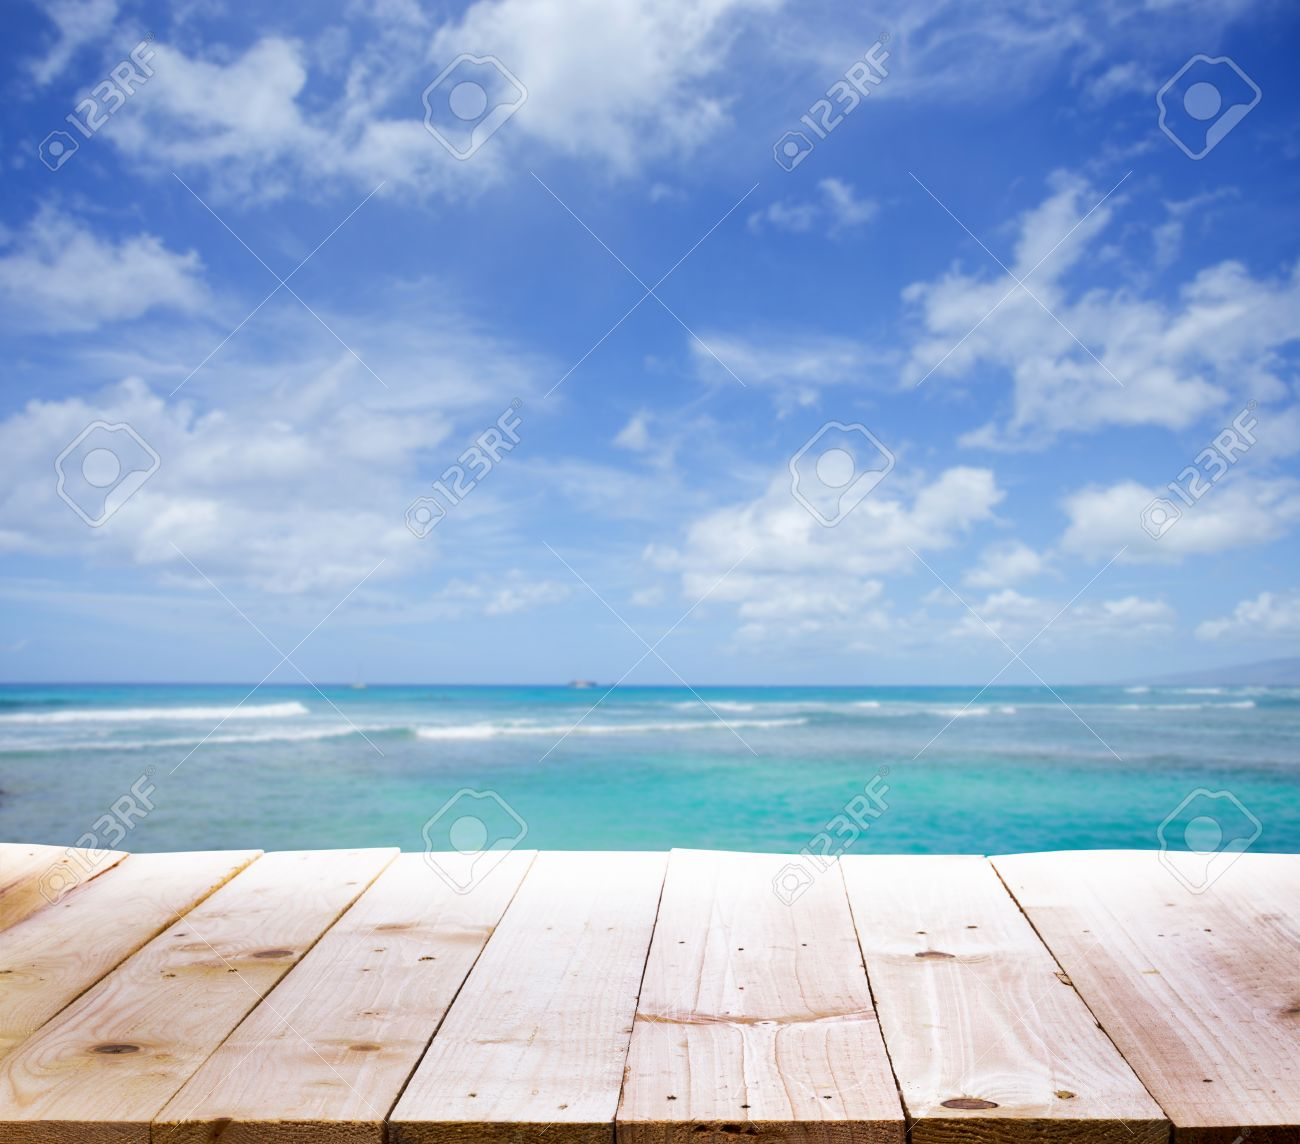 Stock Photo - Wood table with sea background